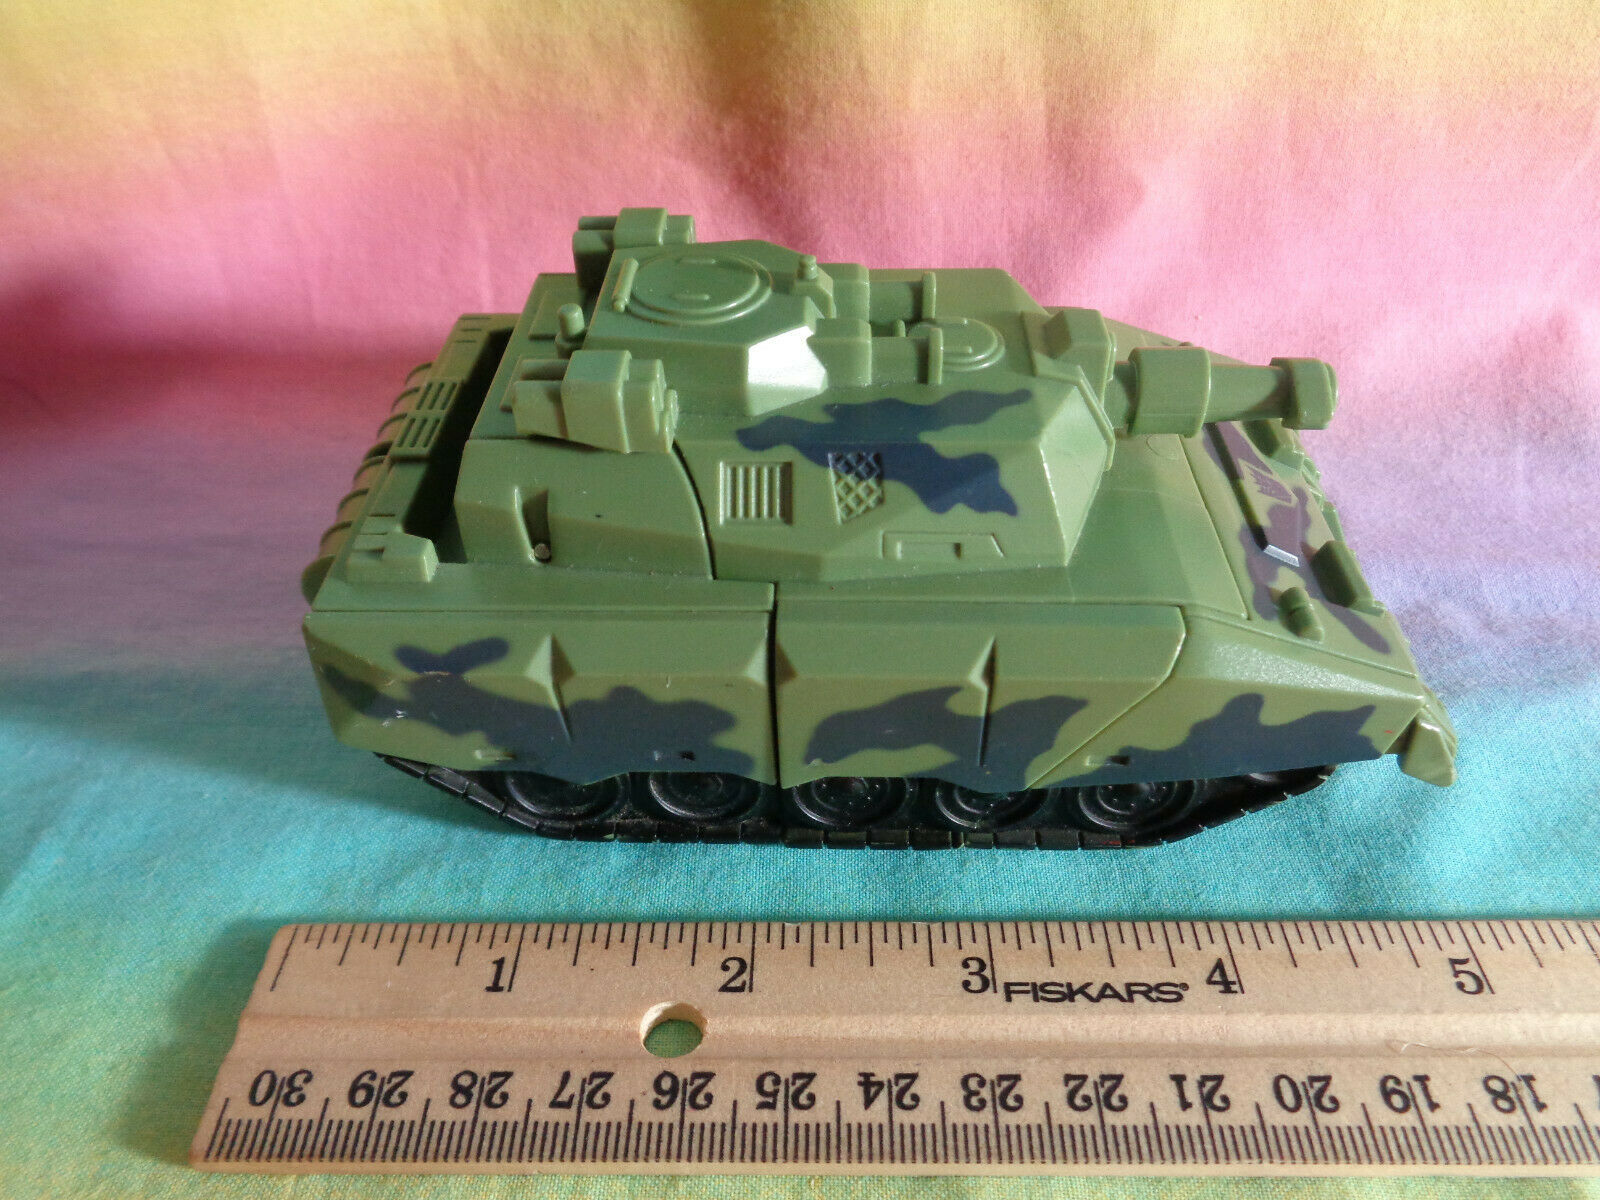 Transformers 2008 Hasbro Green Army Tank Replacement Parts - as is image 8